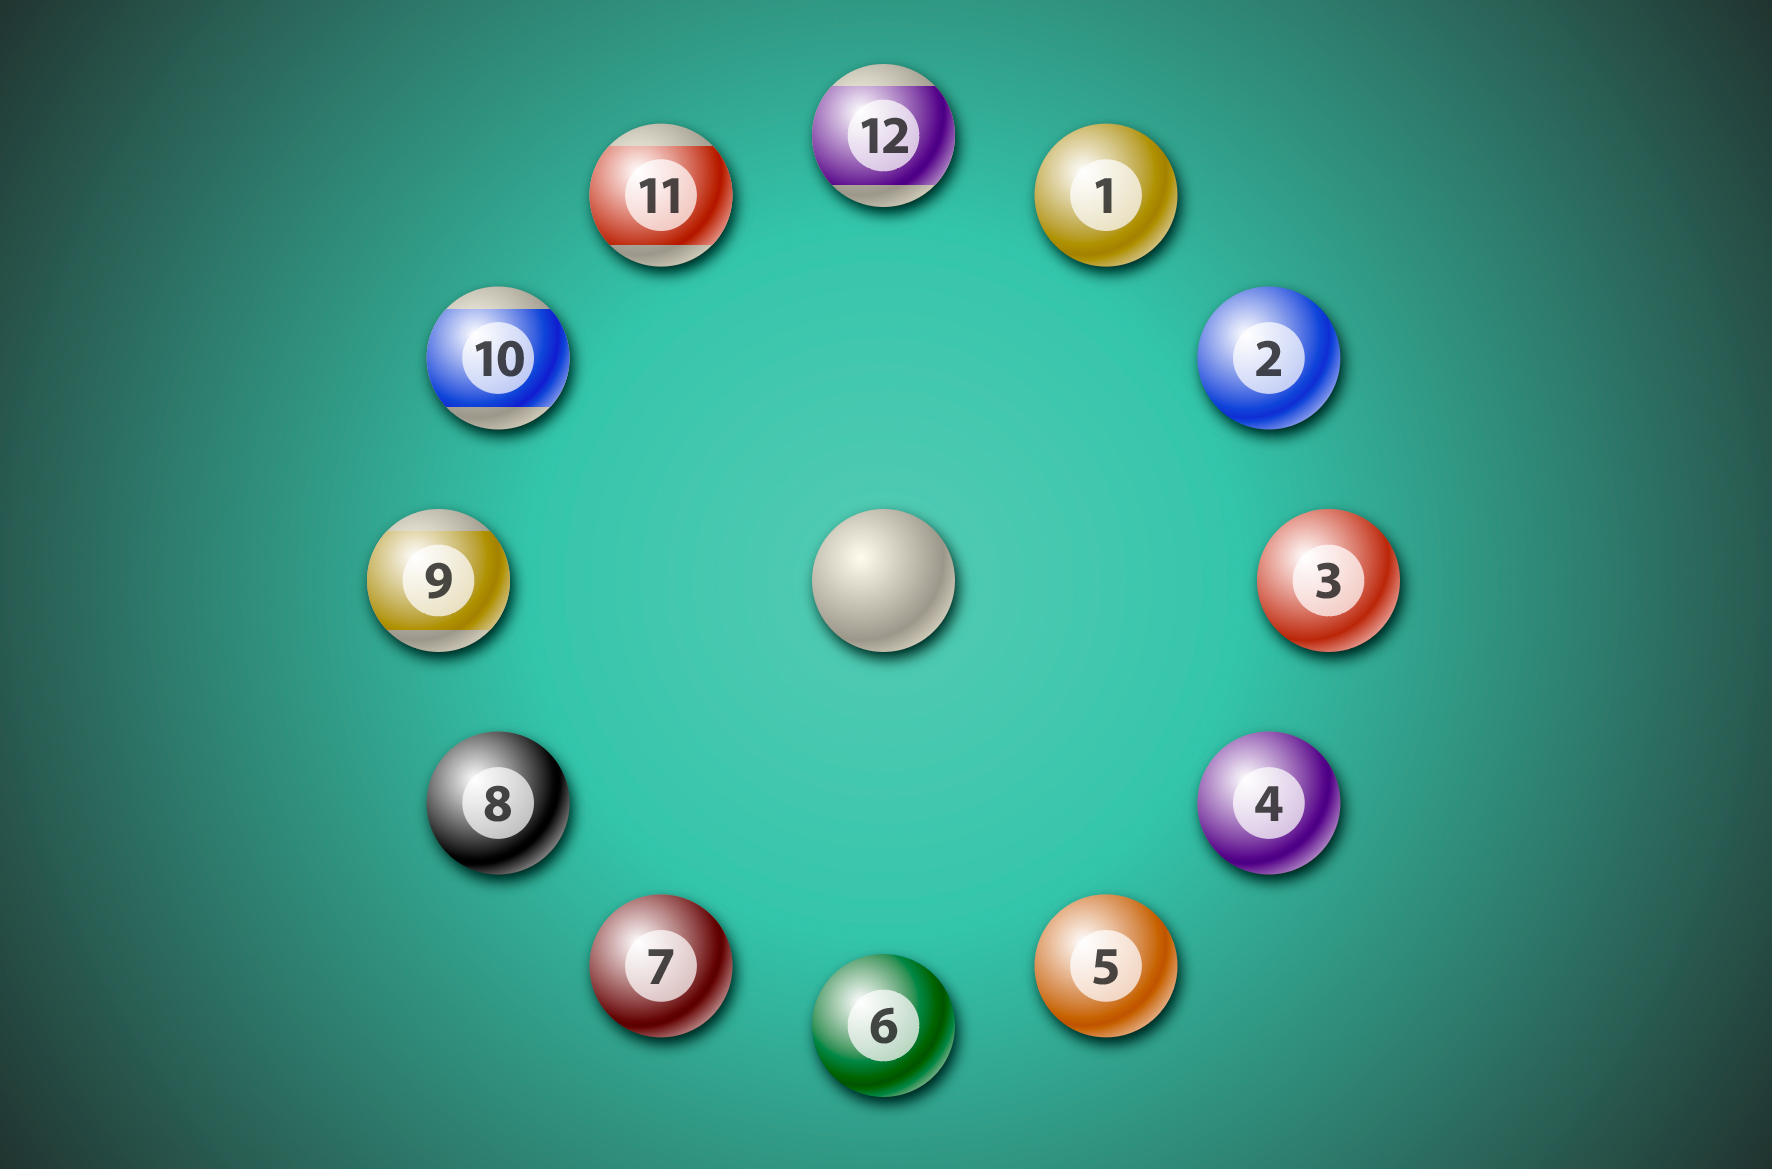 Colored pool balls around a clock face with a cue ball in the center